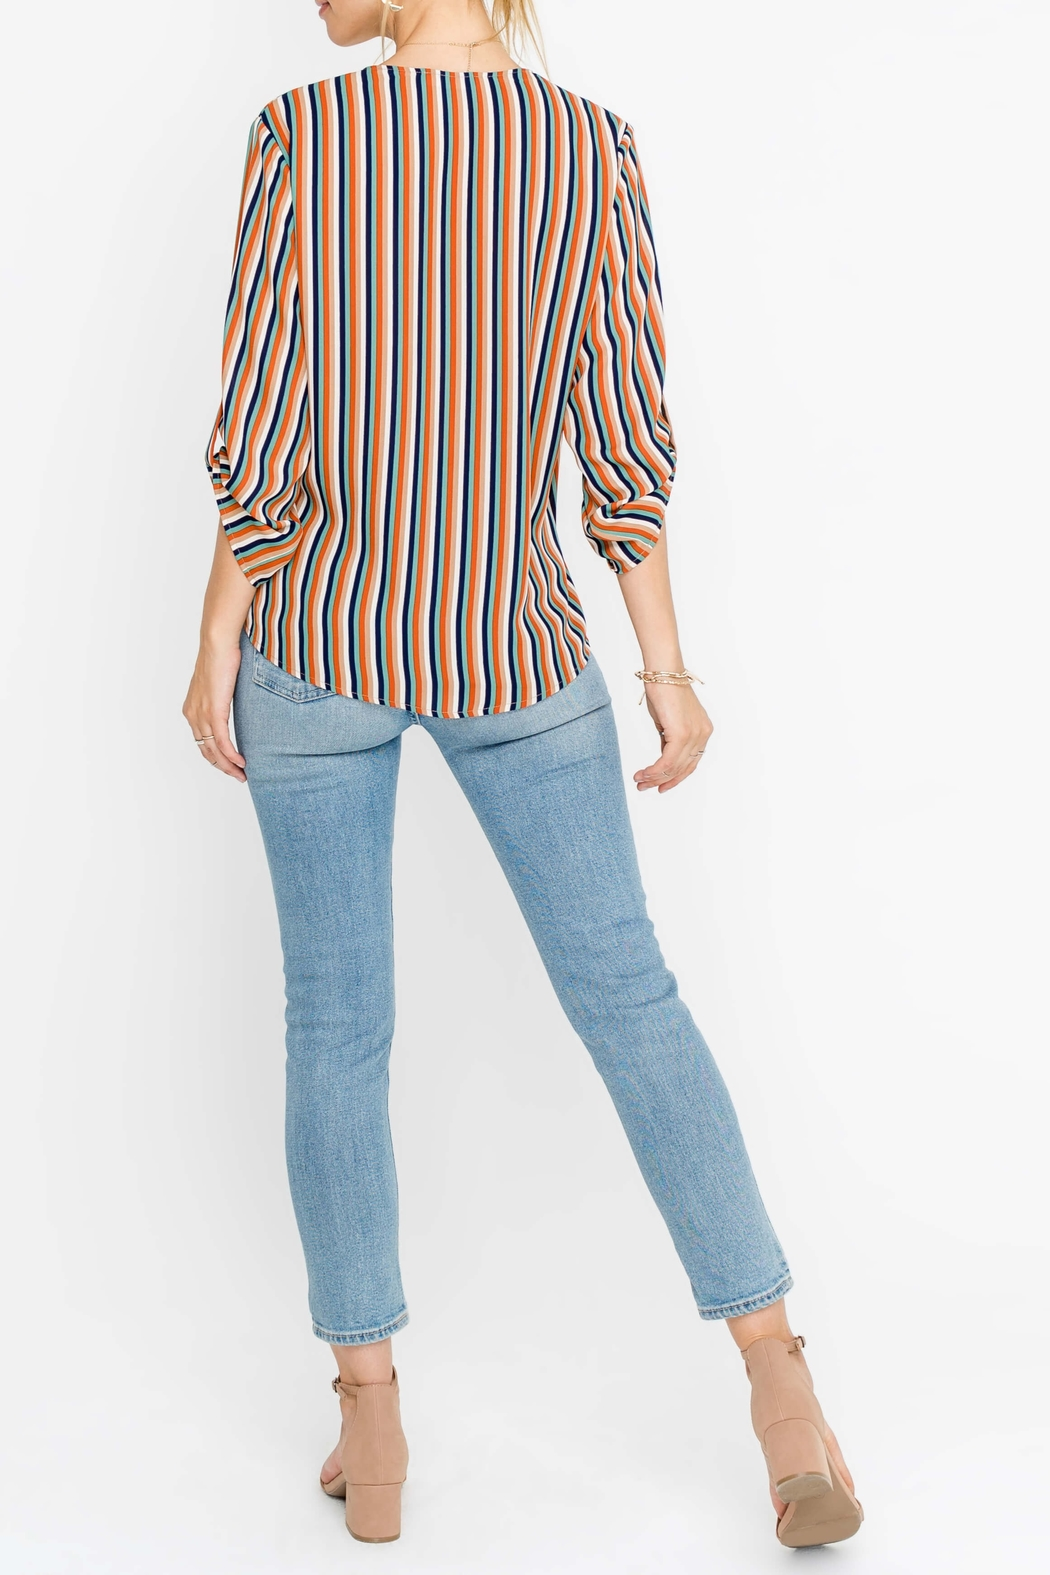 Lush Striped Wrap Style Top - Front Full Image